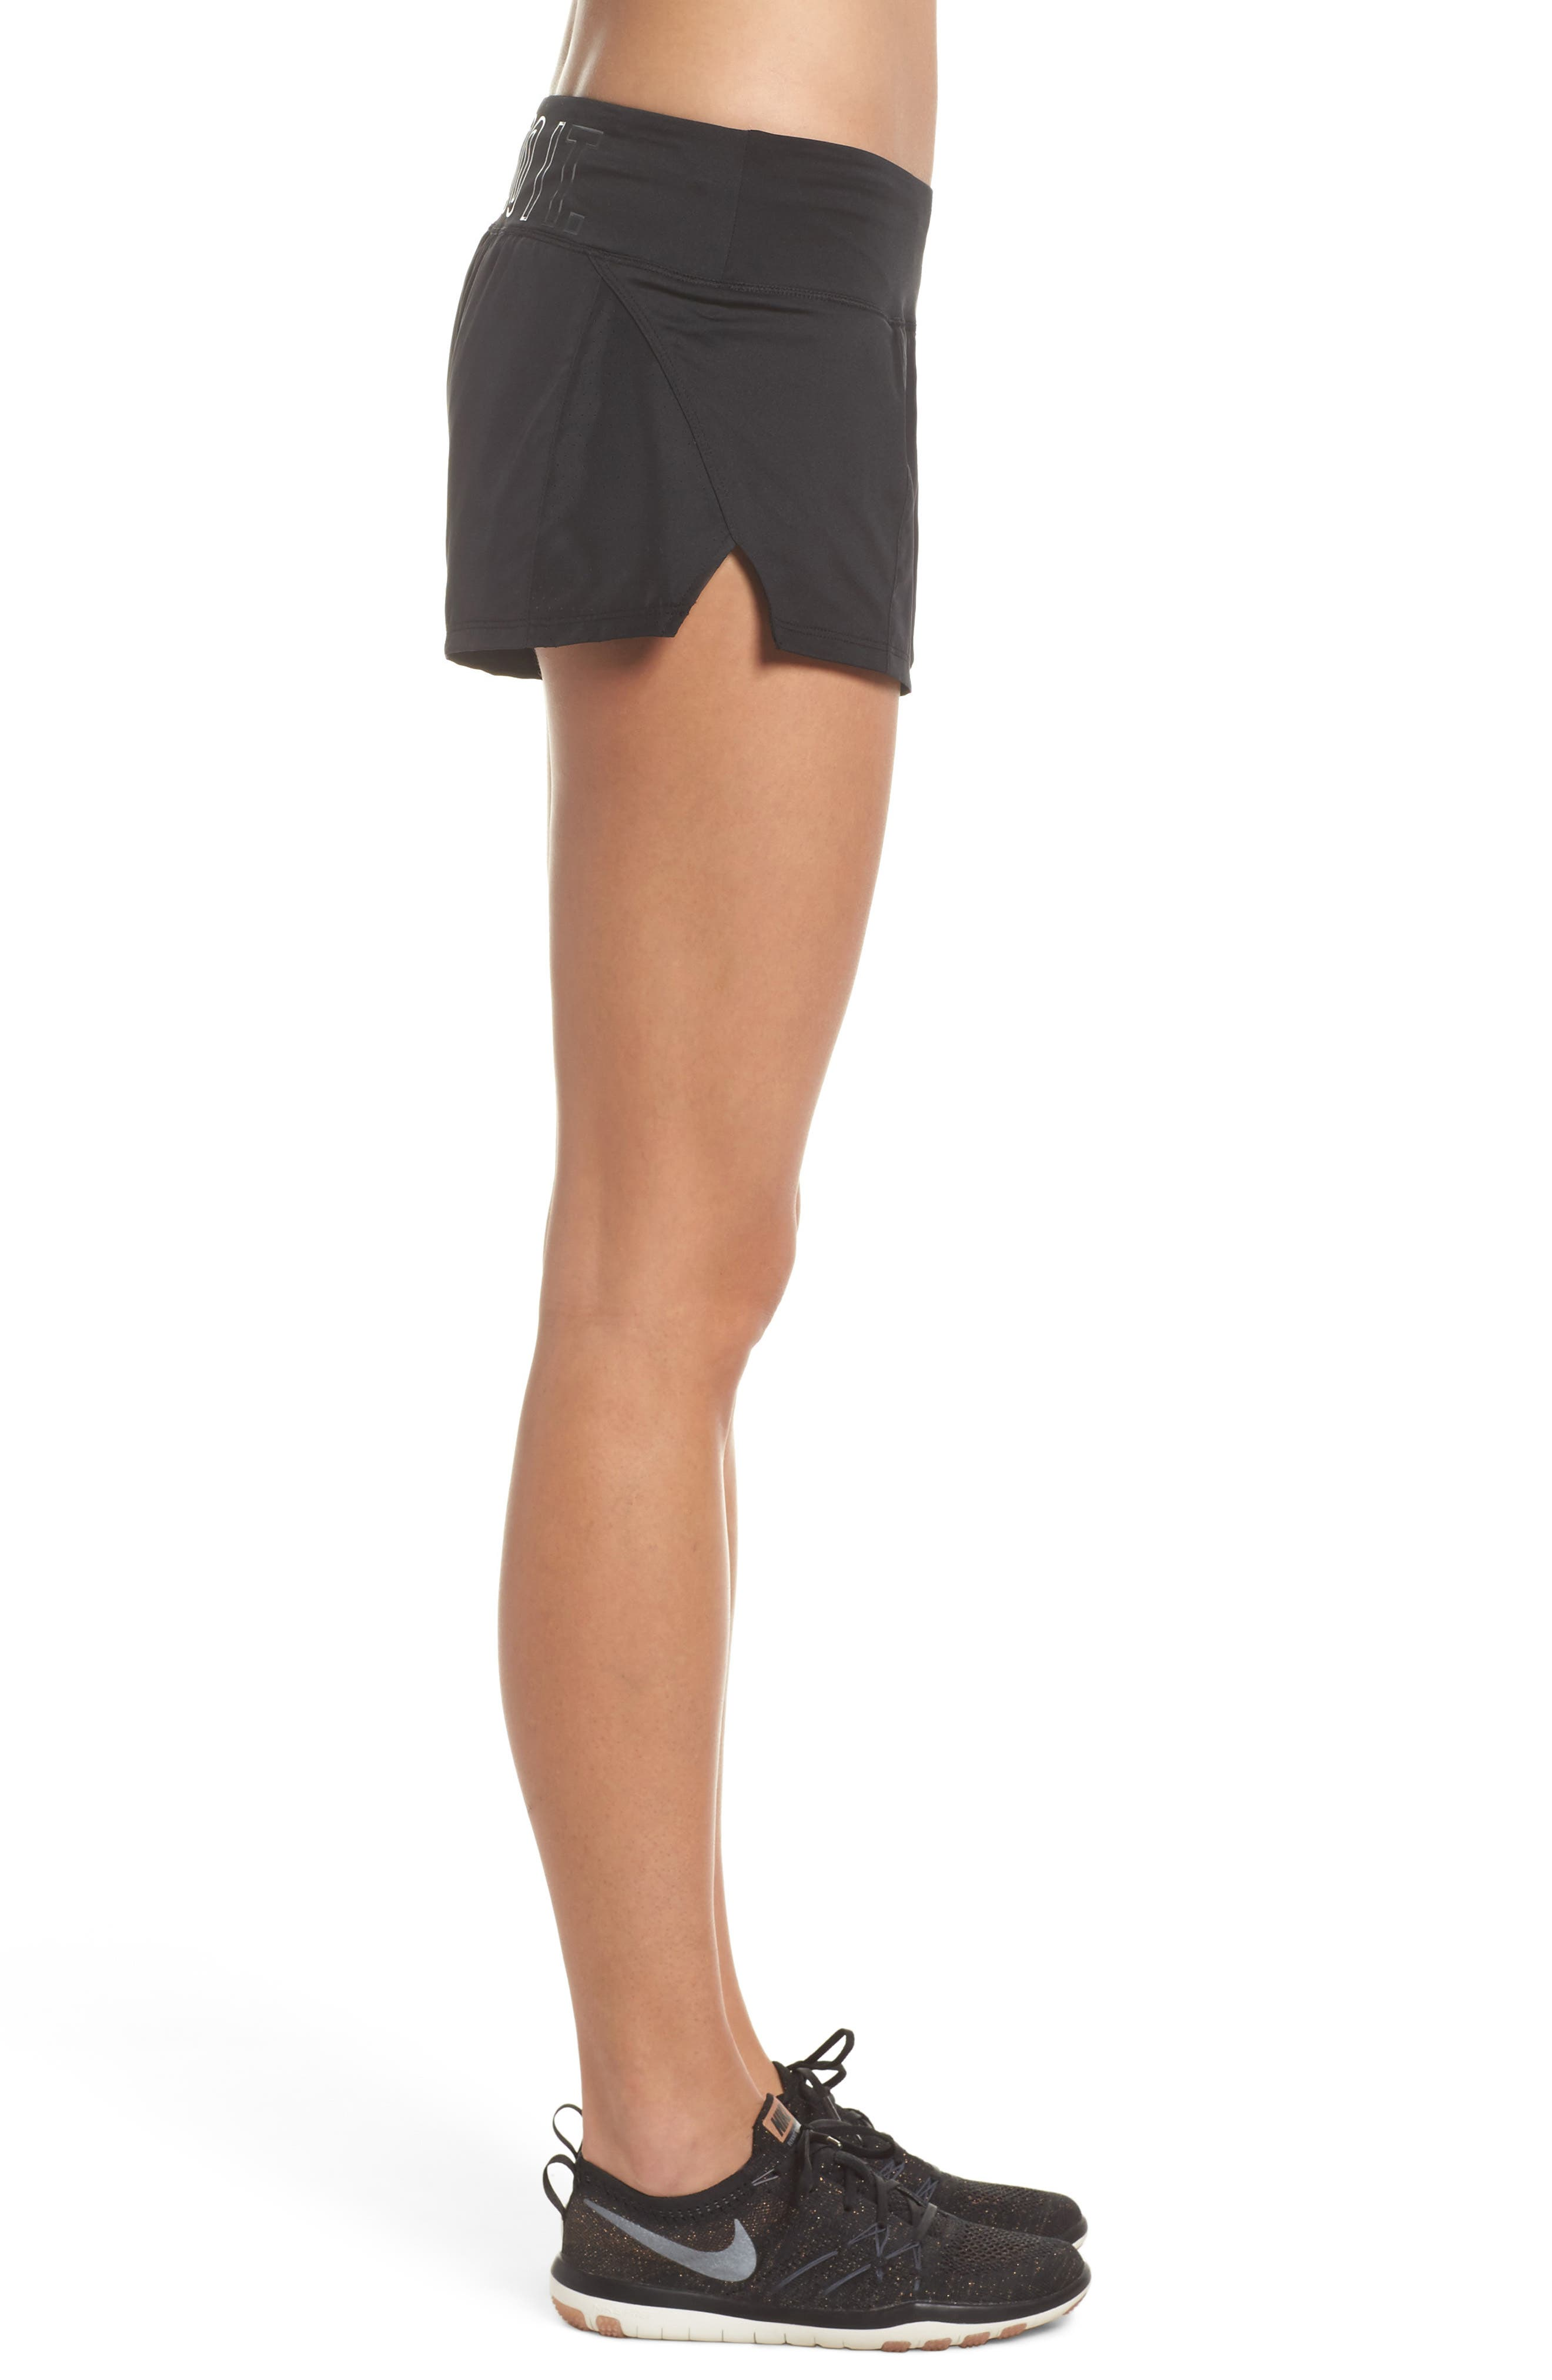 Dry Crew Running Shorts,                             Alternate thumbnail 3, color,                             Black/ Anthracite